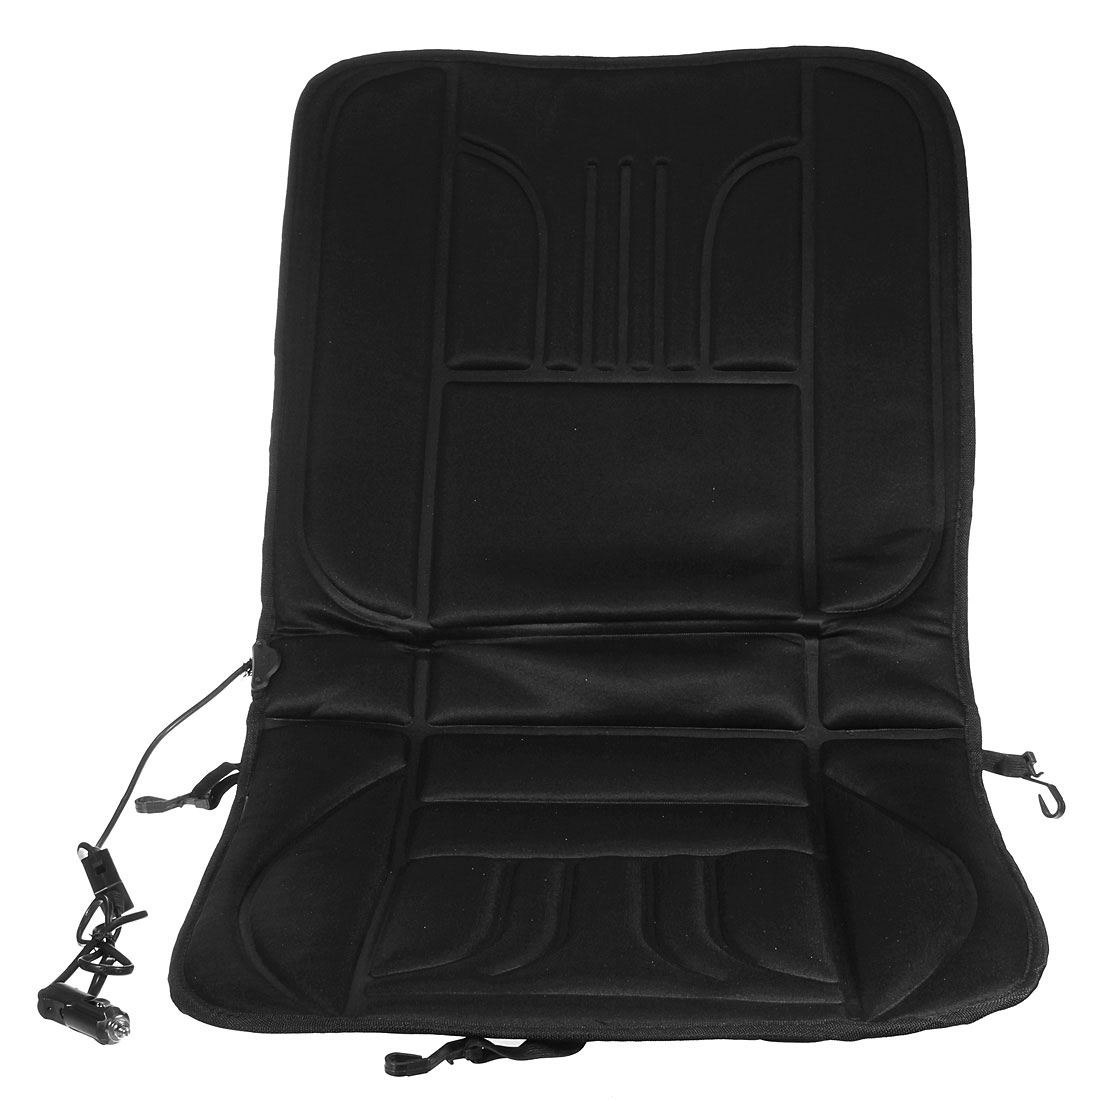 Car Truck Vehicle Heated Padded Pad Hot Front Seat Cushion